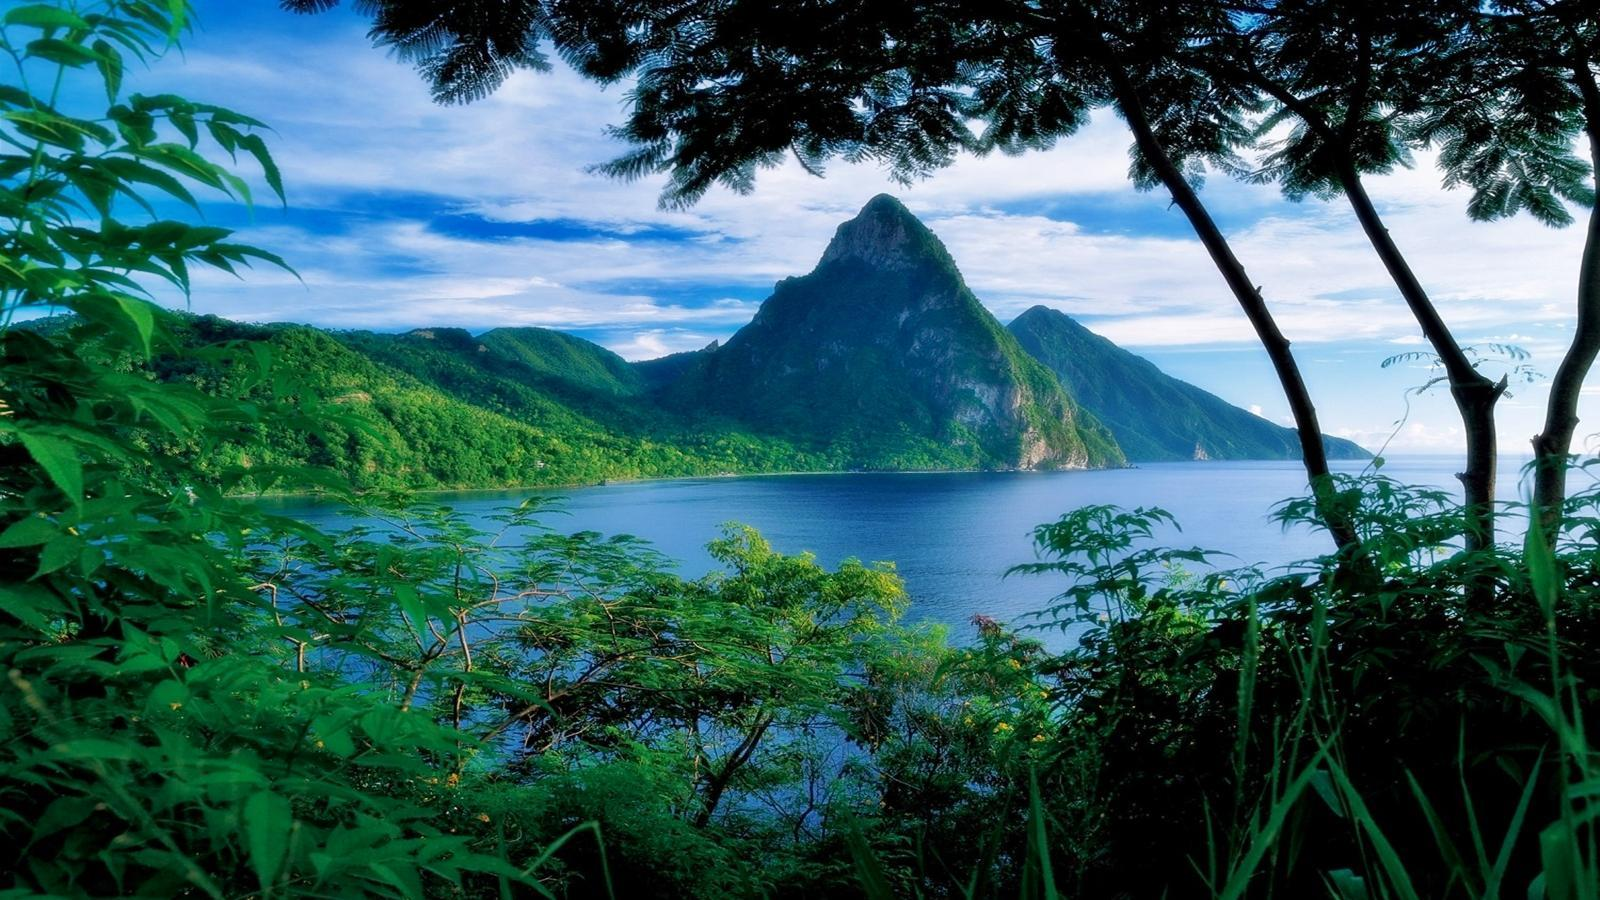 High Res Anime Wallpaper Saint Lucia Wallpapers Wallpaper Cave